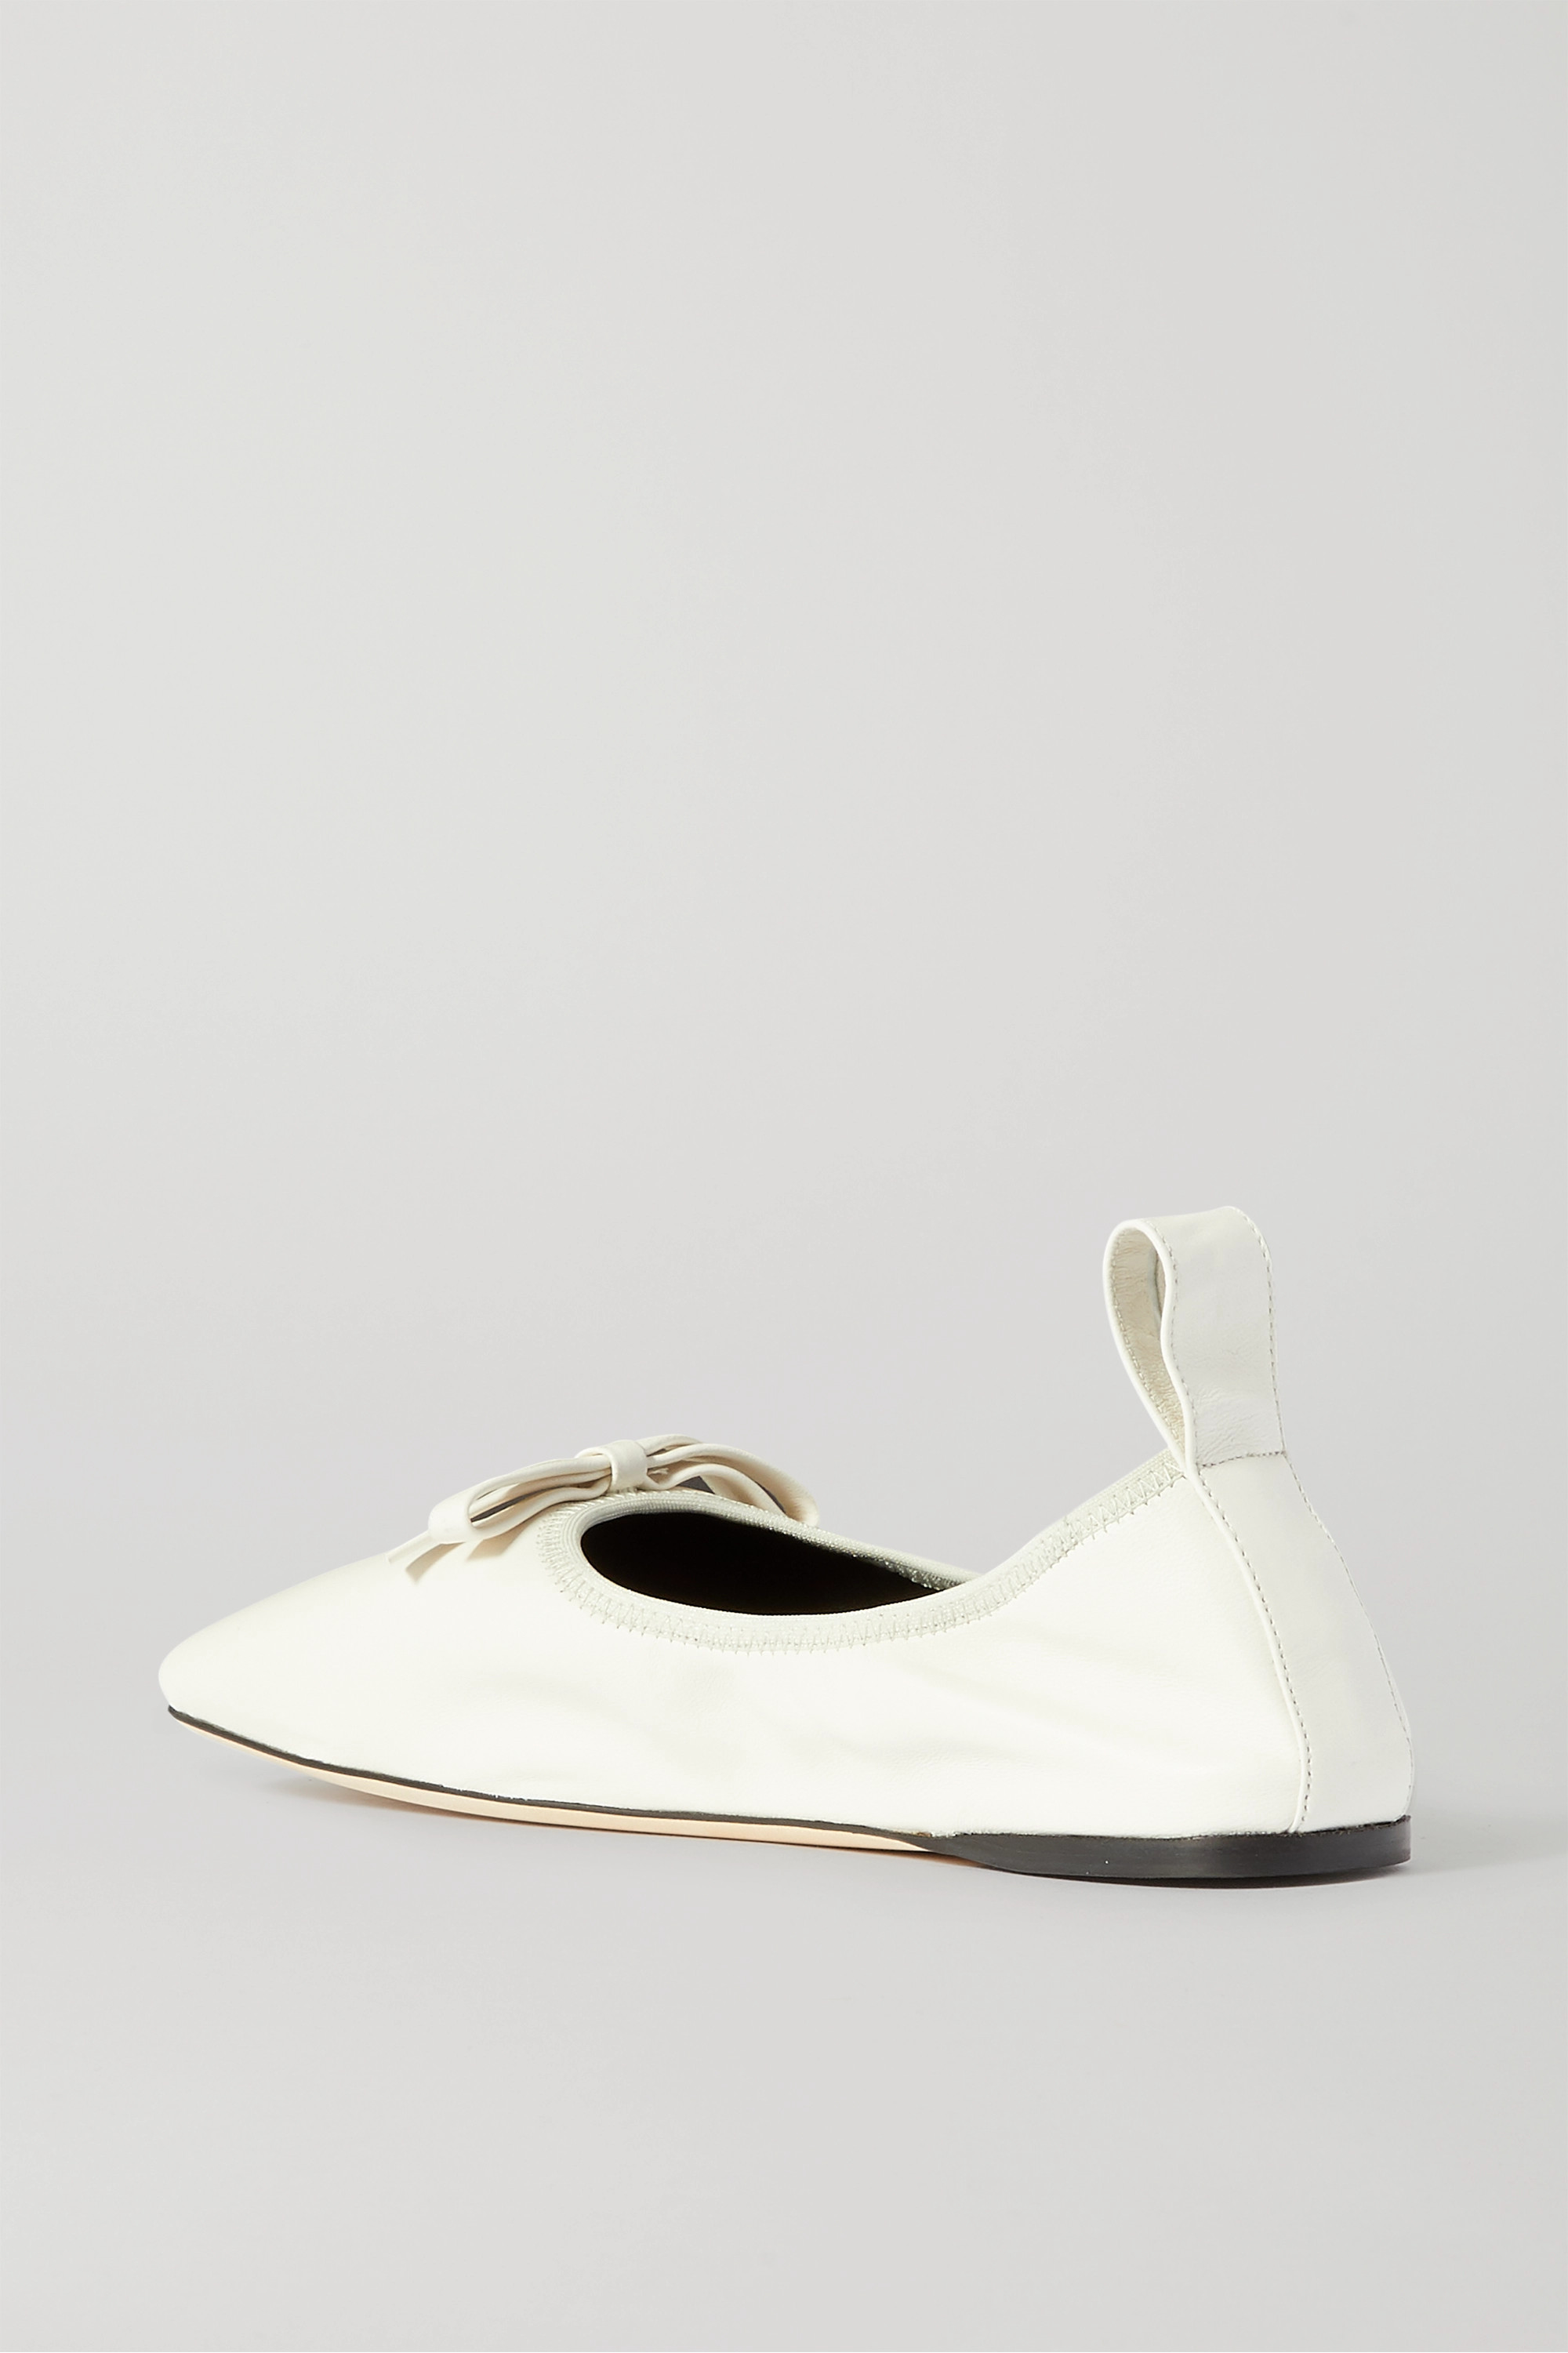 Loewe Bow-detailed leather ballet flats